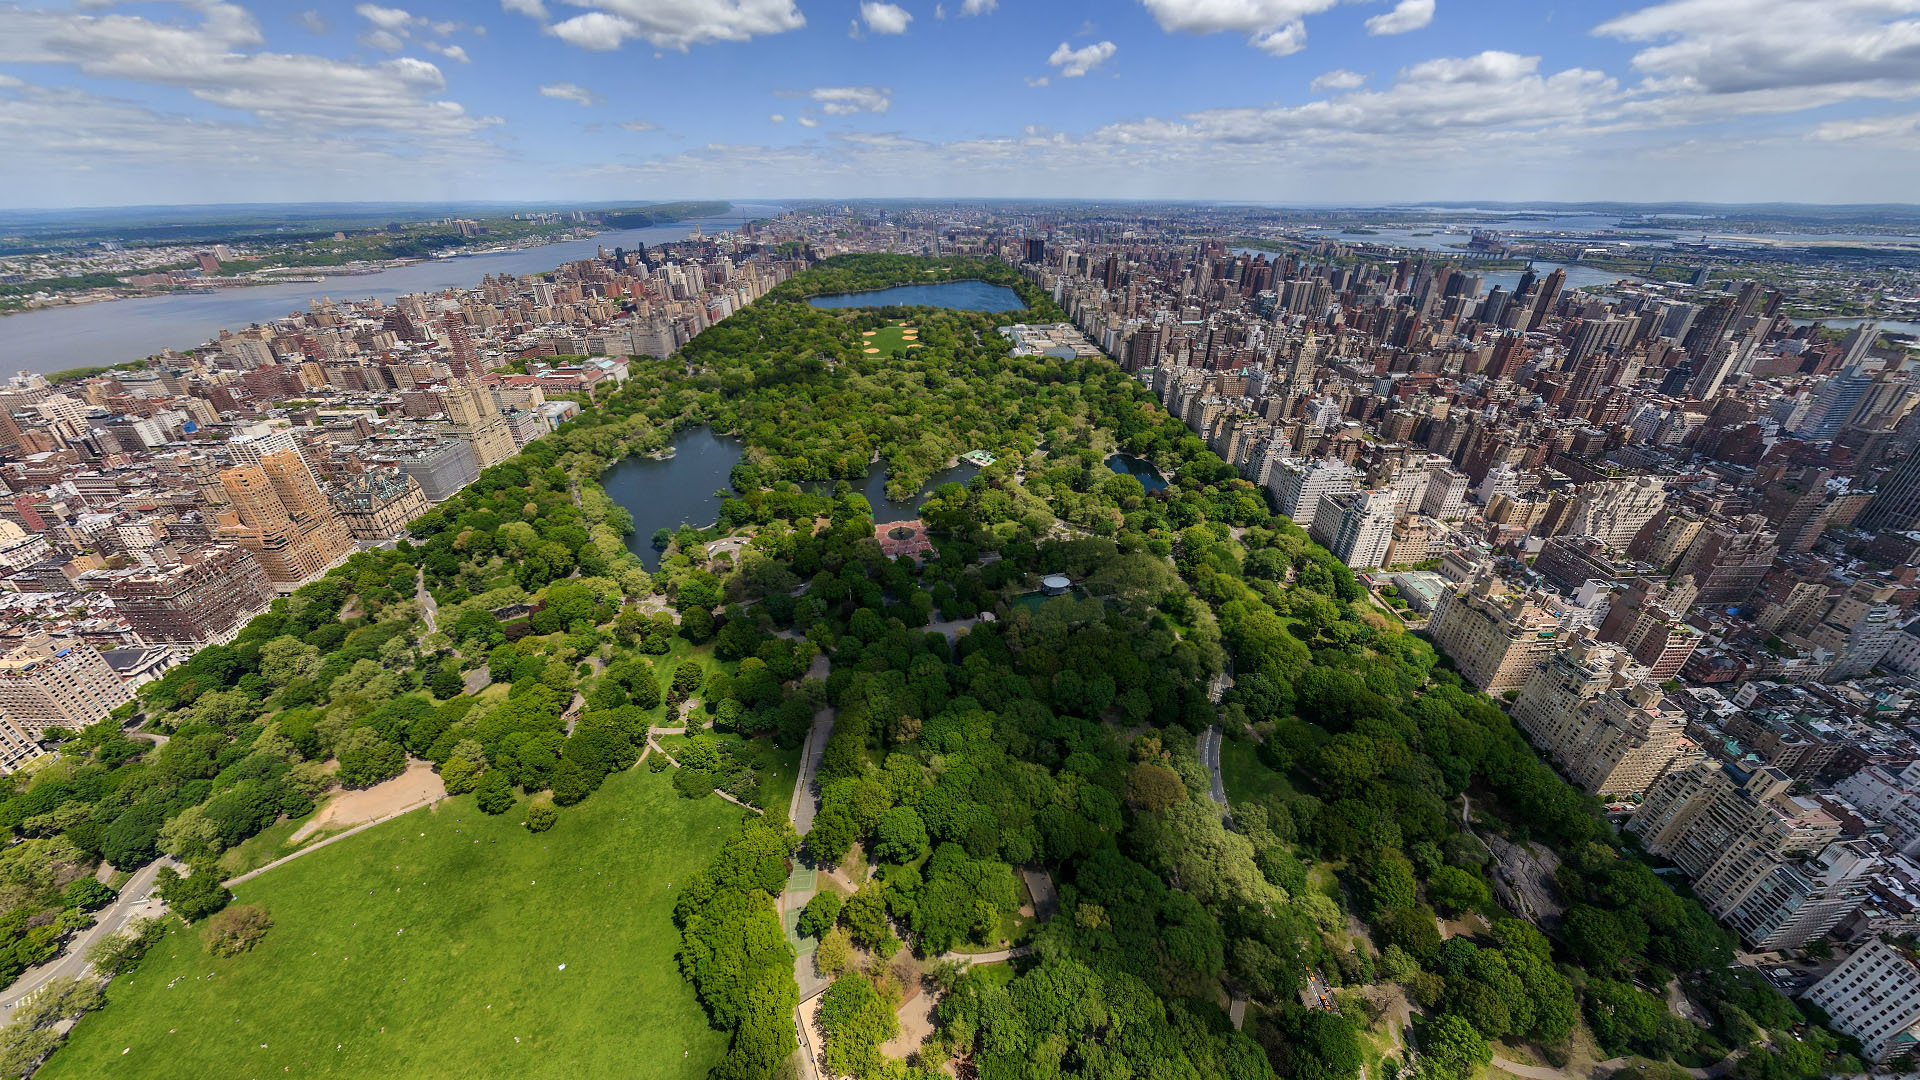 Aerial view central park new york united states